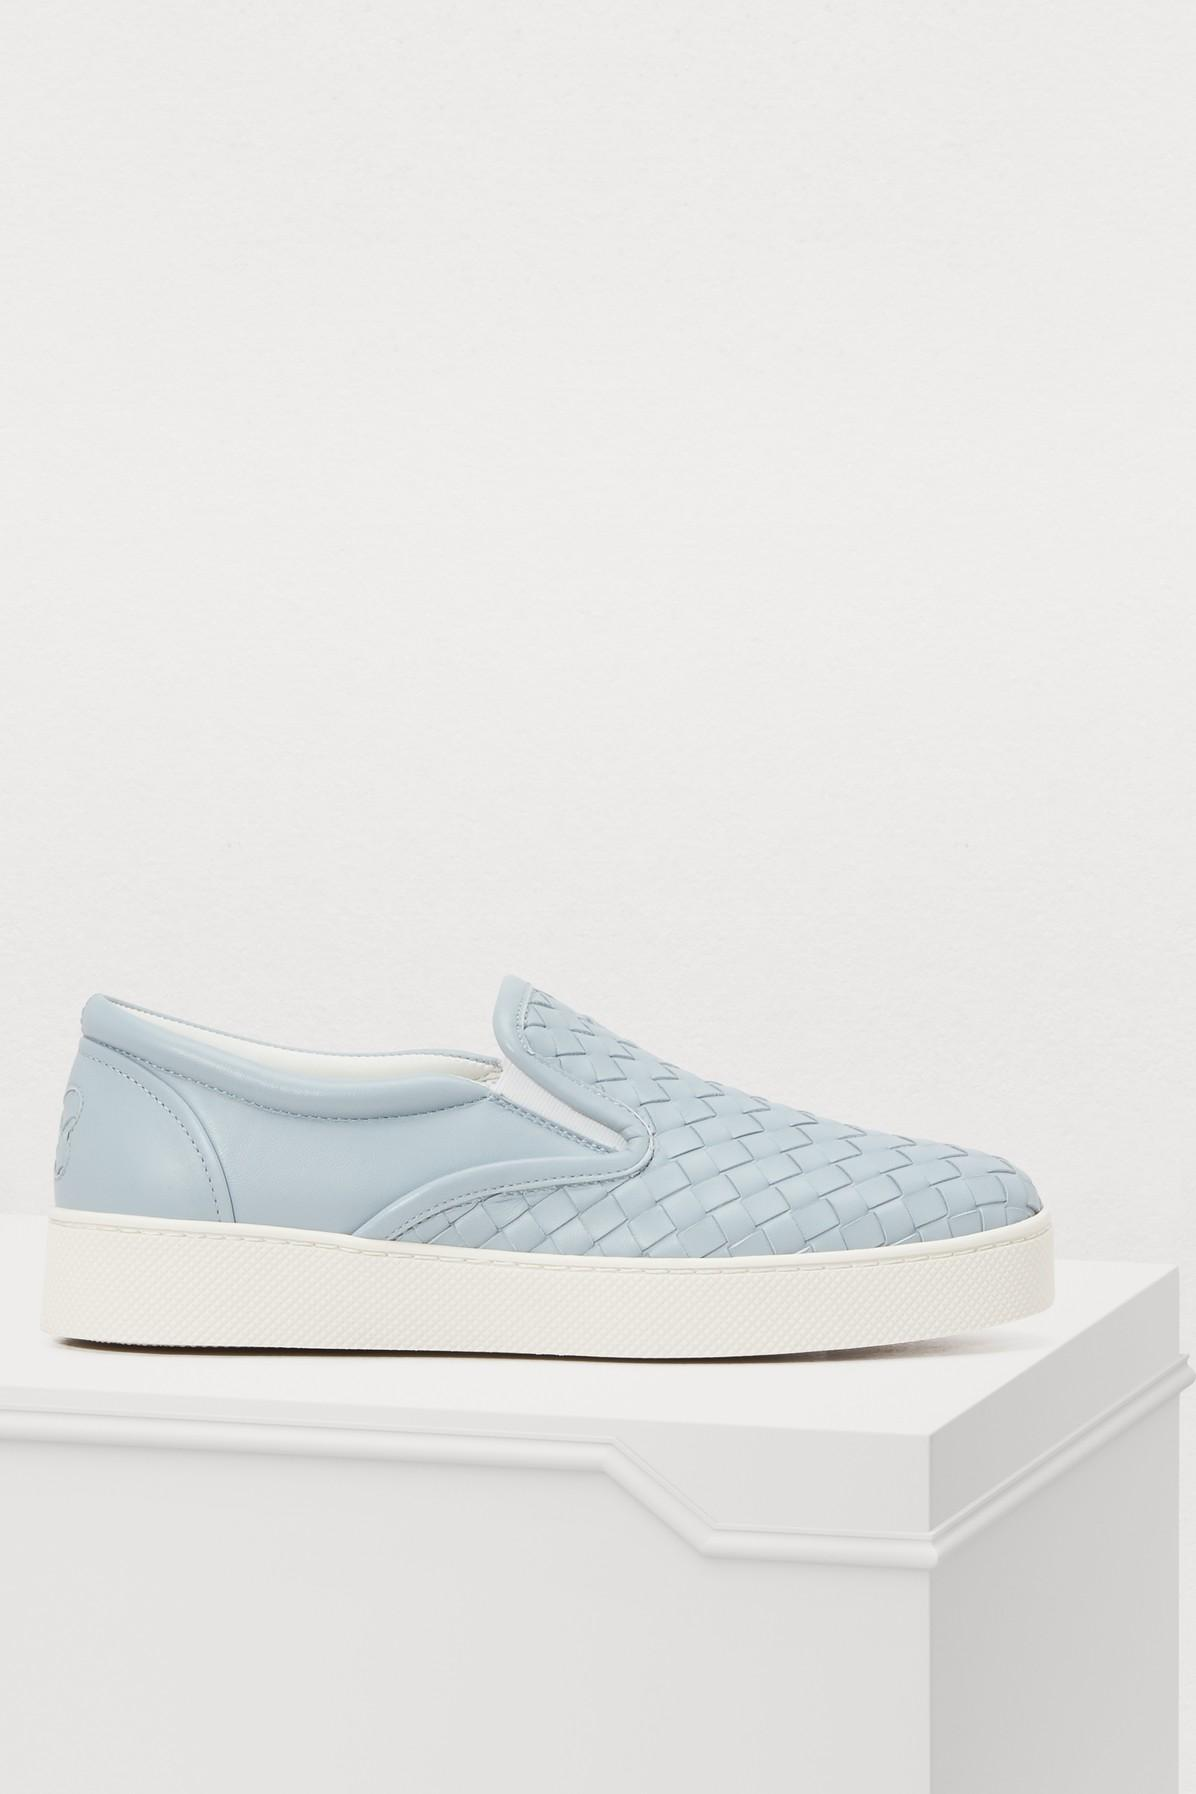 Bottega Veneta Intrecciato Leather Slip-On Sneakers In Blue